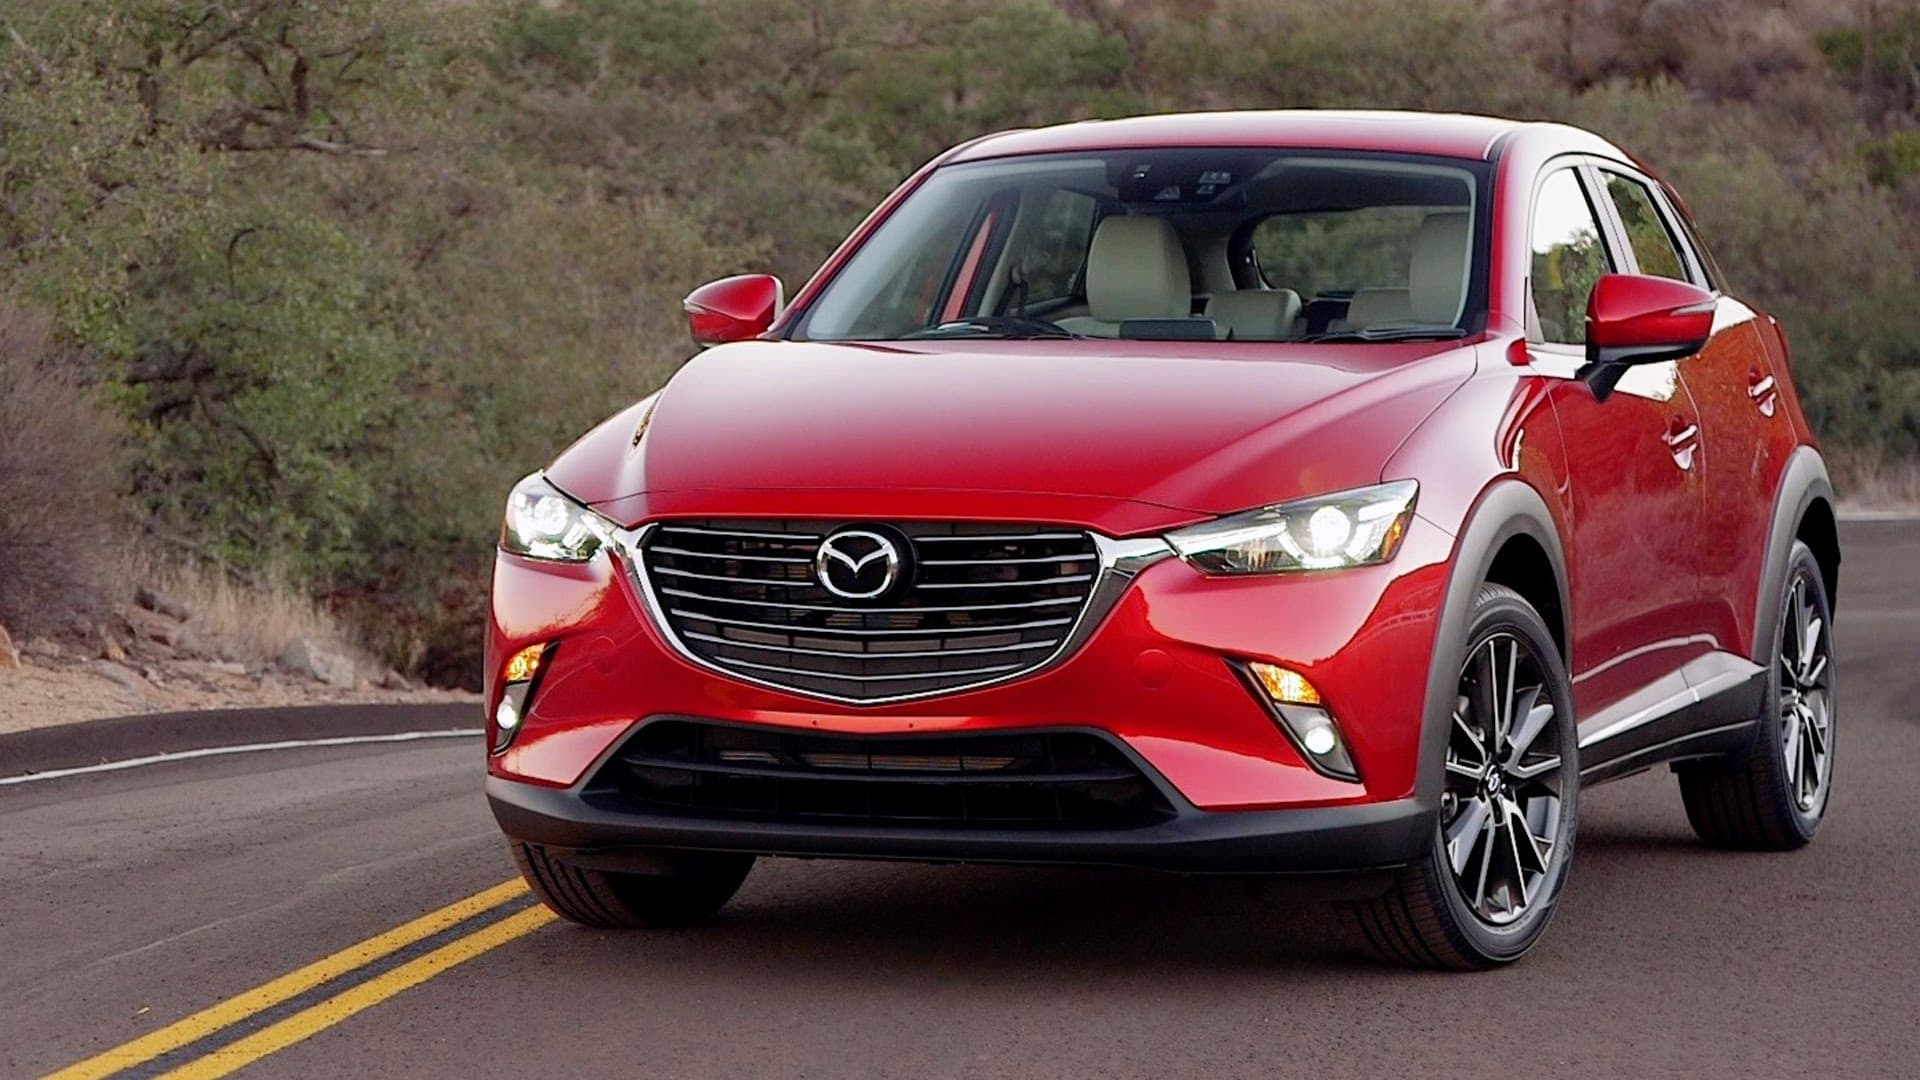 mazda cx 3 2016 wallpapers hd high resolution. Black Bedroom Furniture Sets. Home Design Ideas